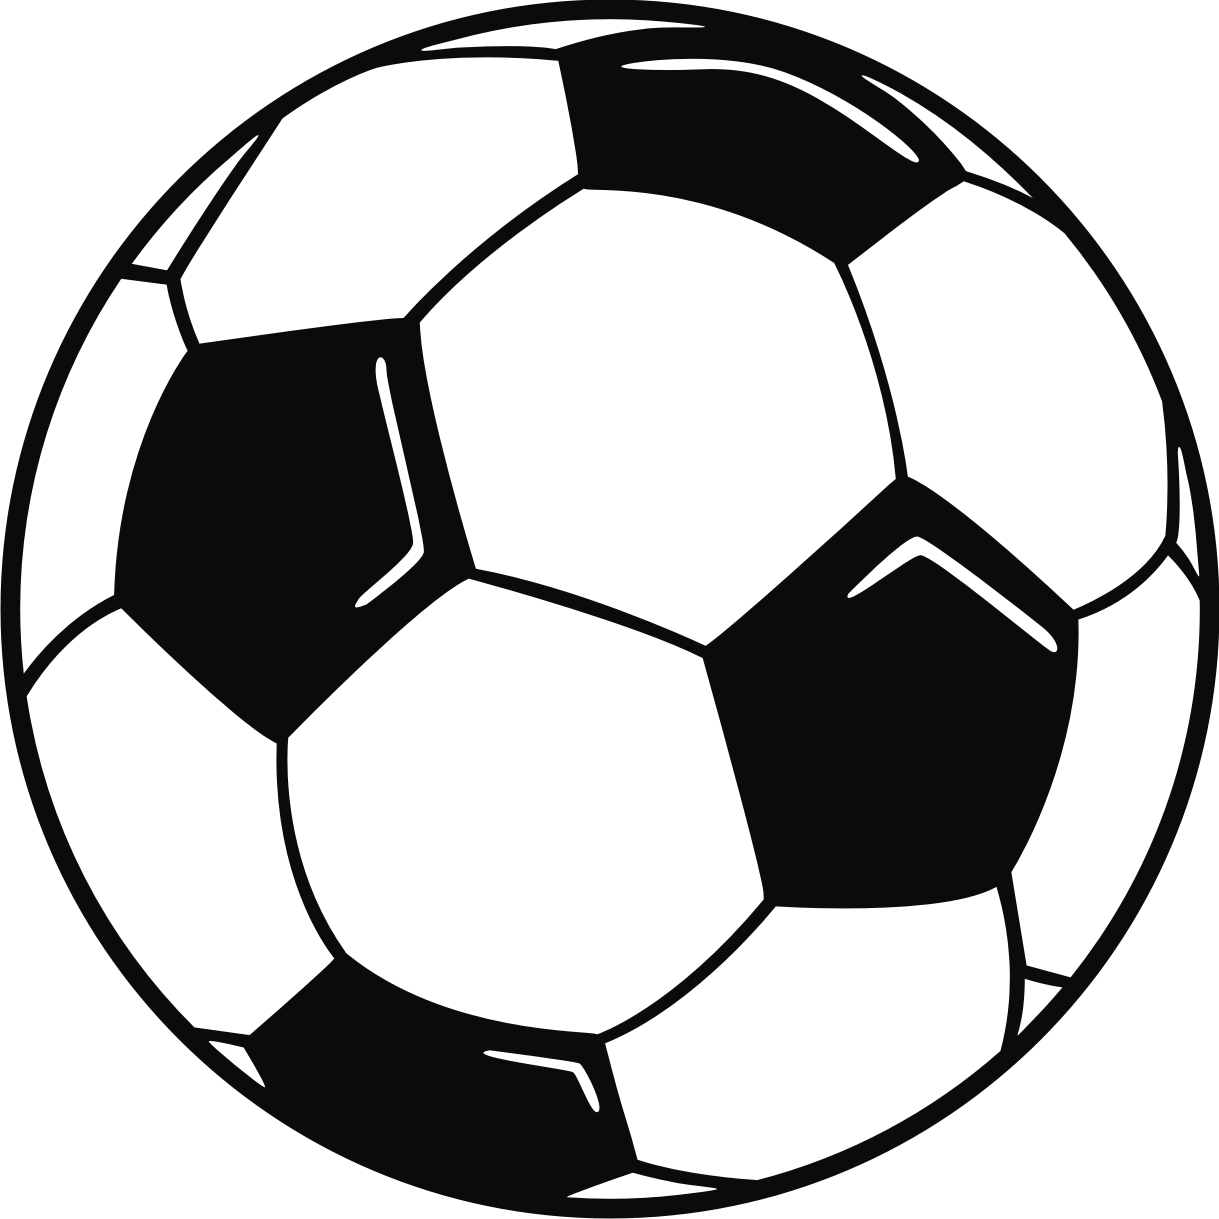 1219x1219 Soccer Ball Clip Art Free Large Images 5